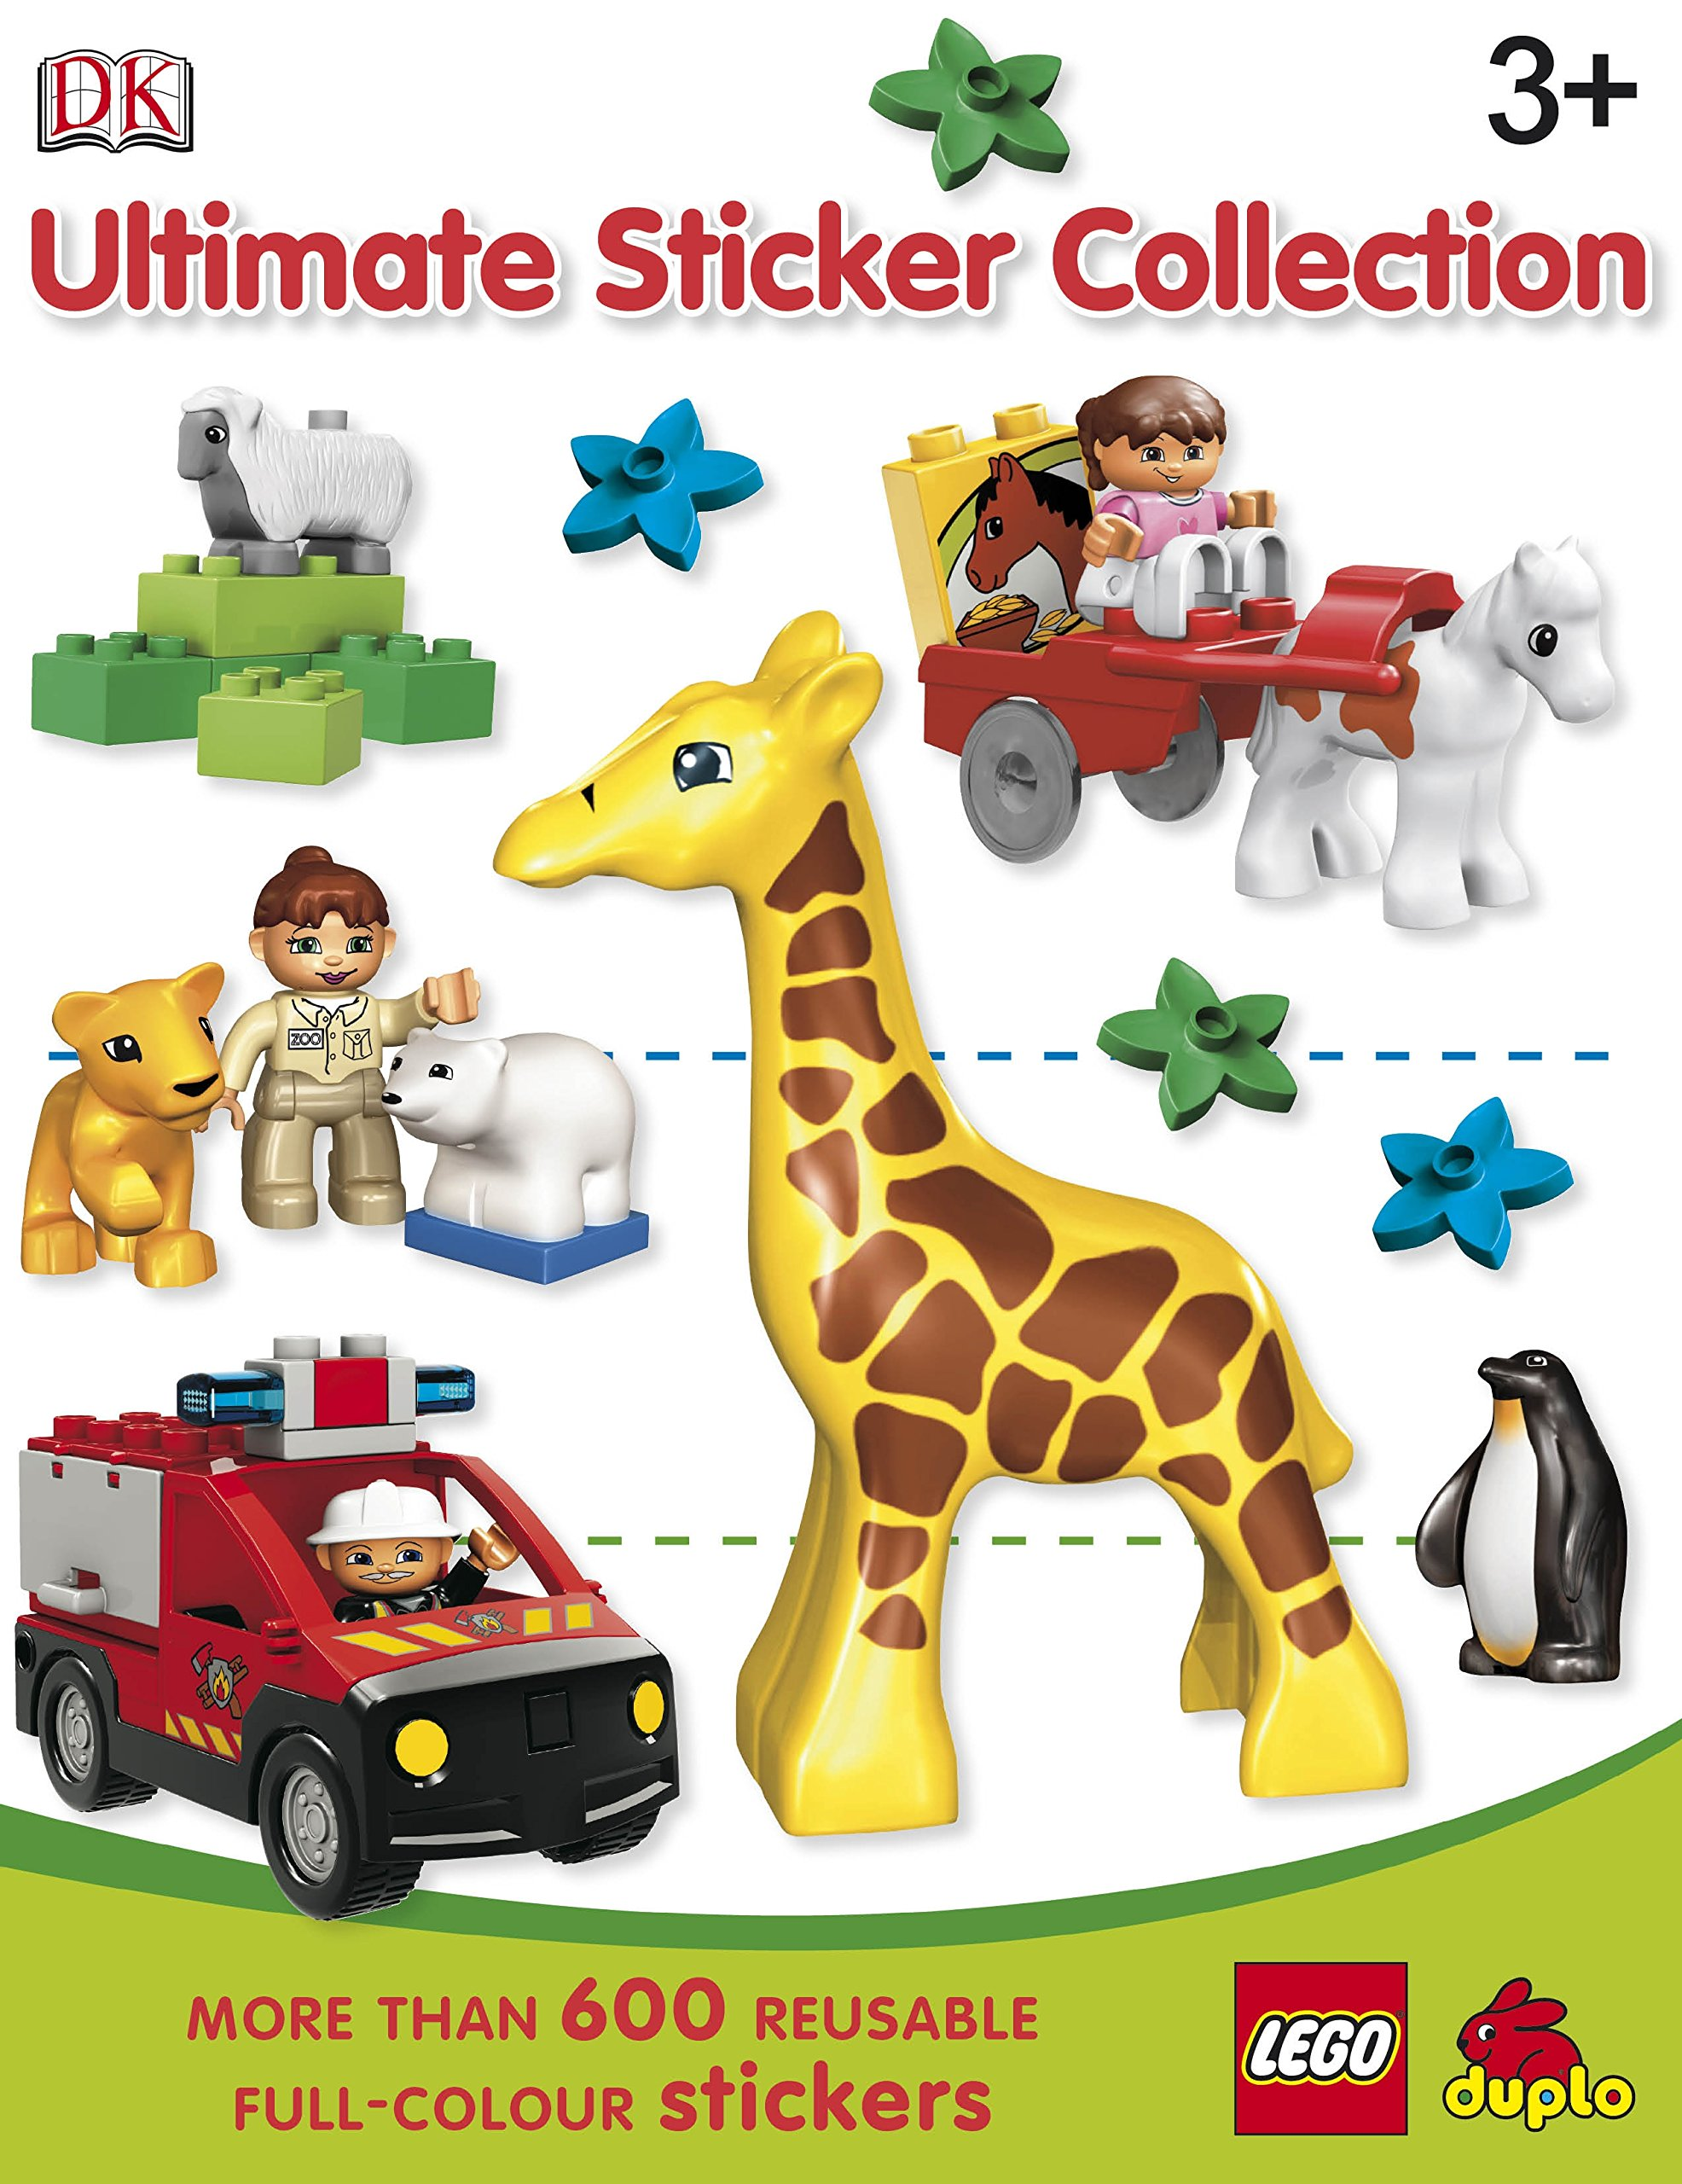 Lego Duplo Ultimate Sticker Collection Ultimate Stickers